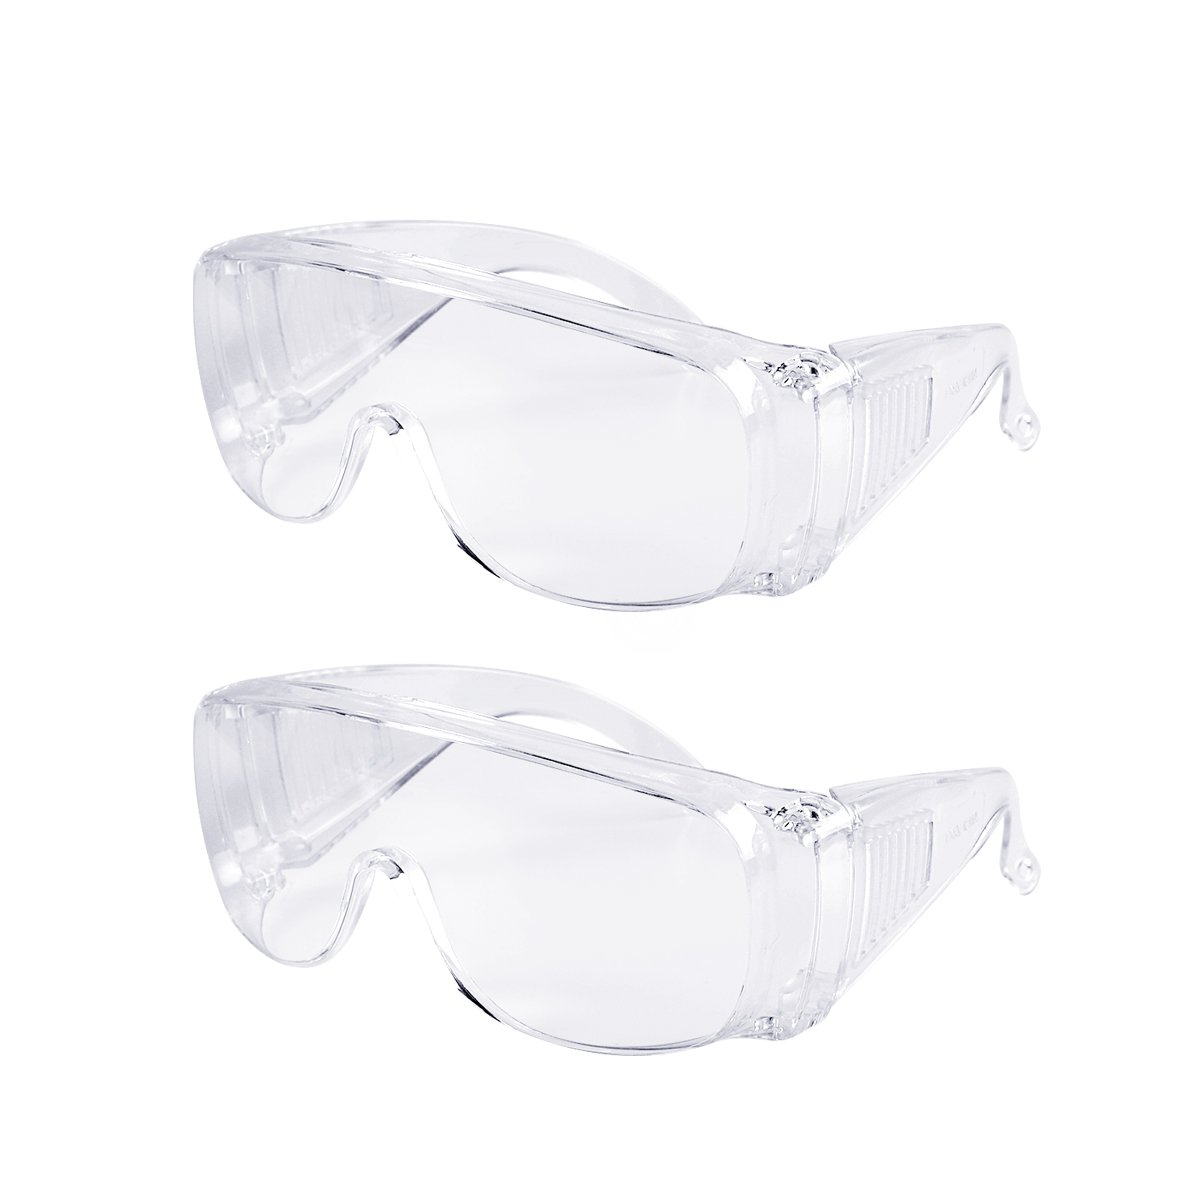 Safety Glasses, Eyewear Personal Protective Equipment / PPE for Construction, DIY, Home Projects & Lab Work (2 Pack)